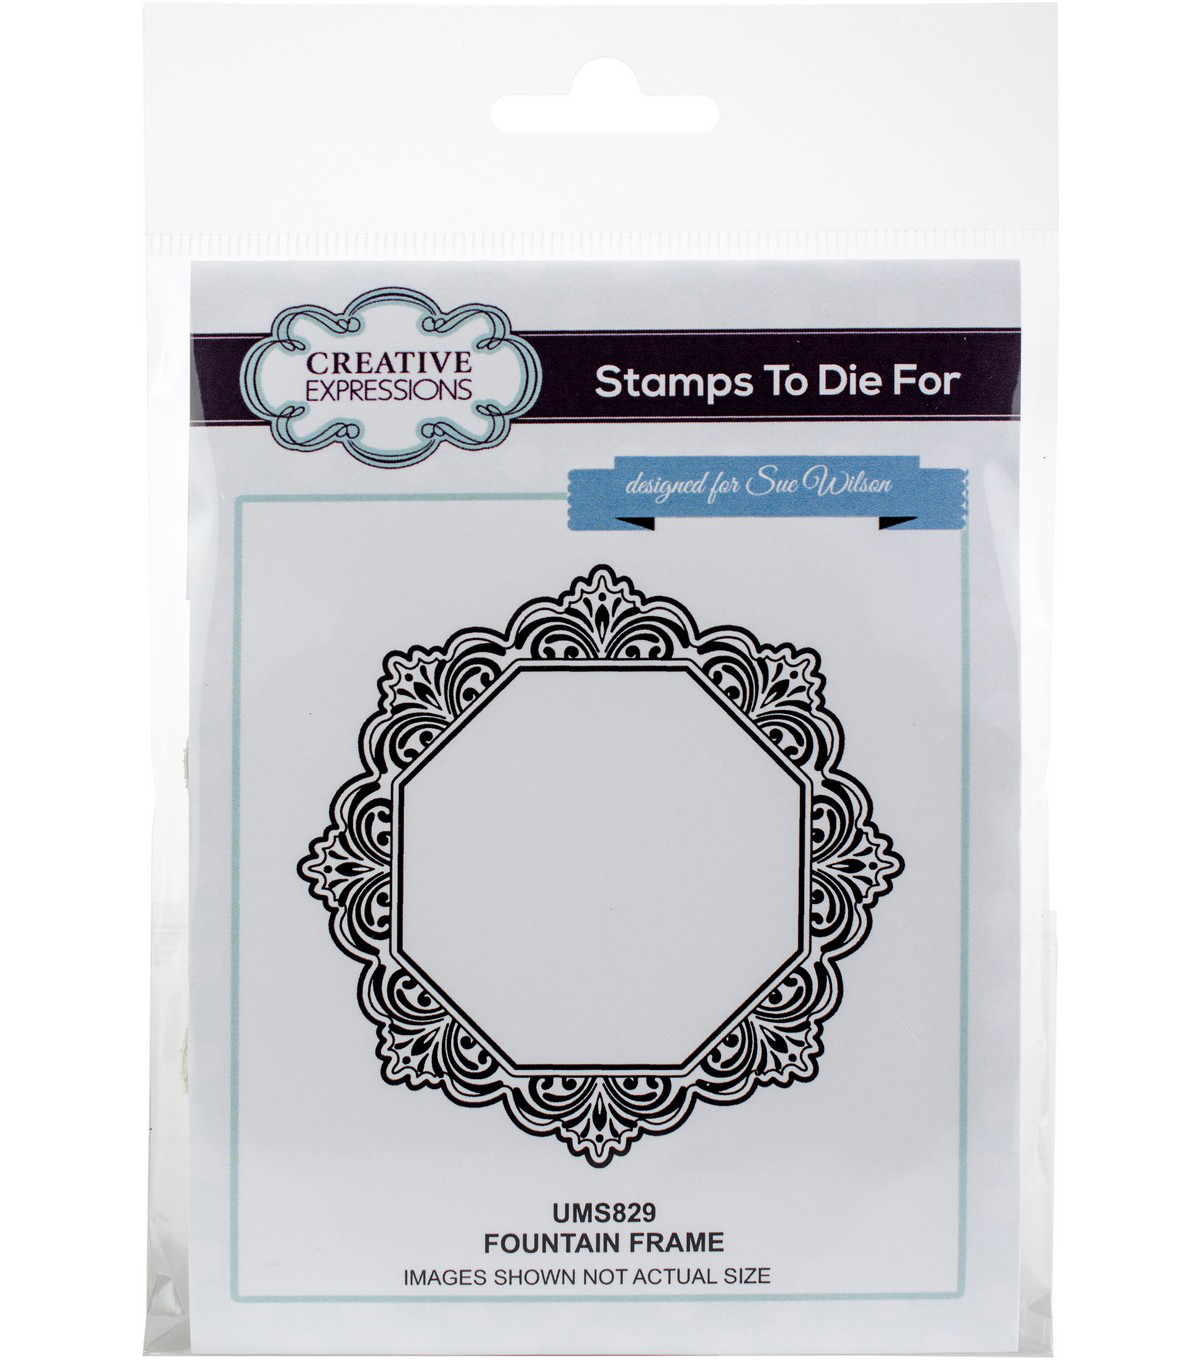 Creative Expressions Stamps To Die For Sue Wilson Stamp-Fountain Frame